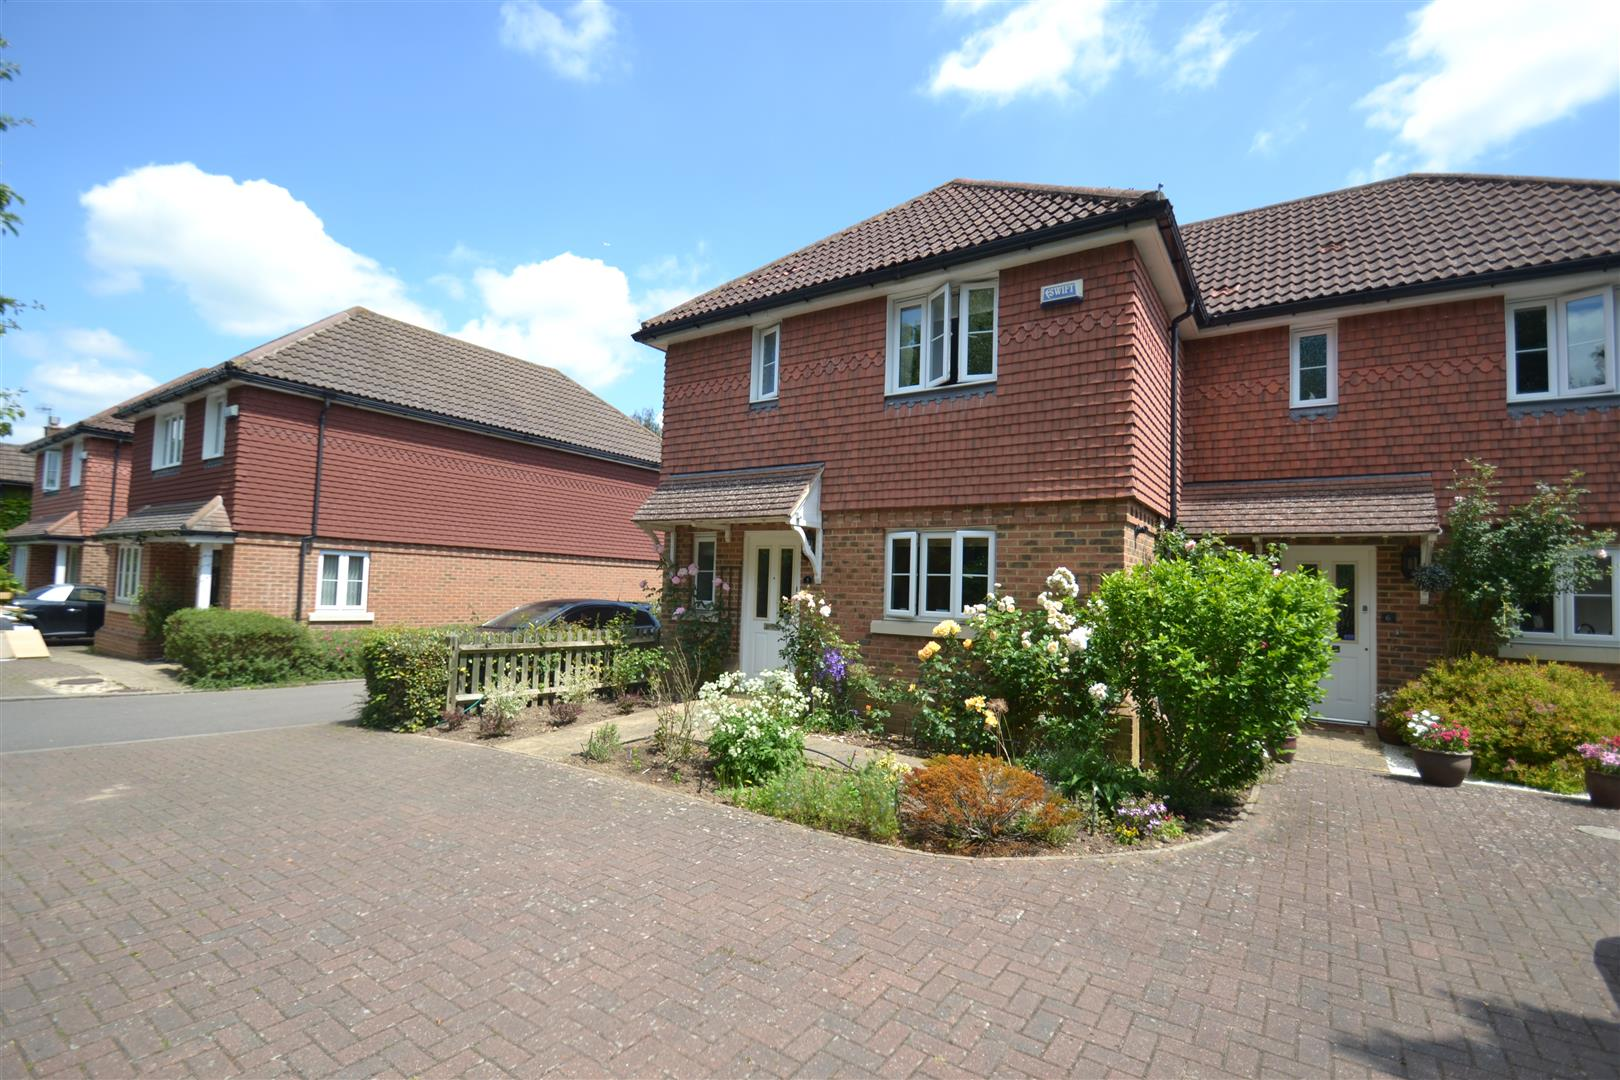 3 Bedrooms Property for sale in Hollie Close, Horley